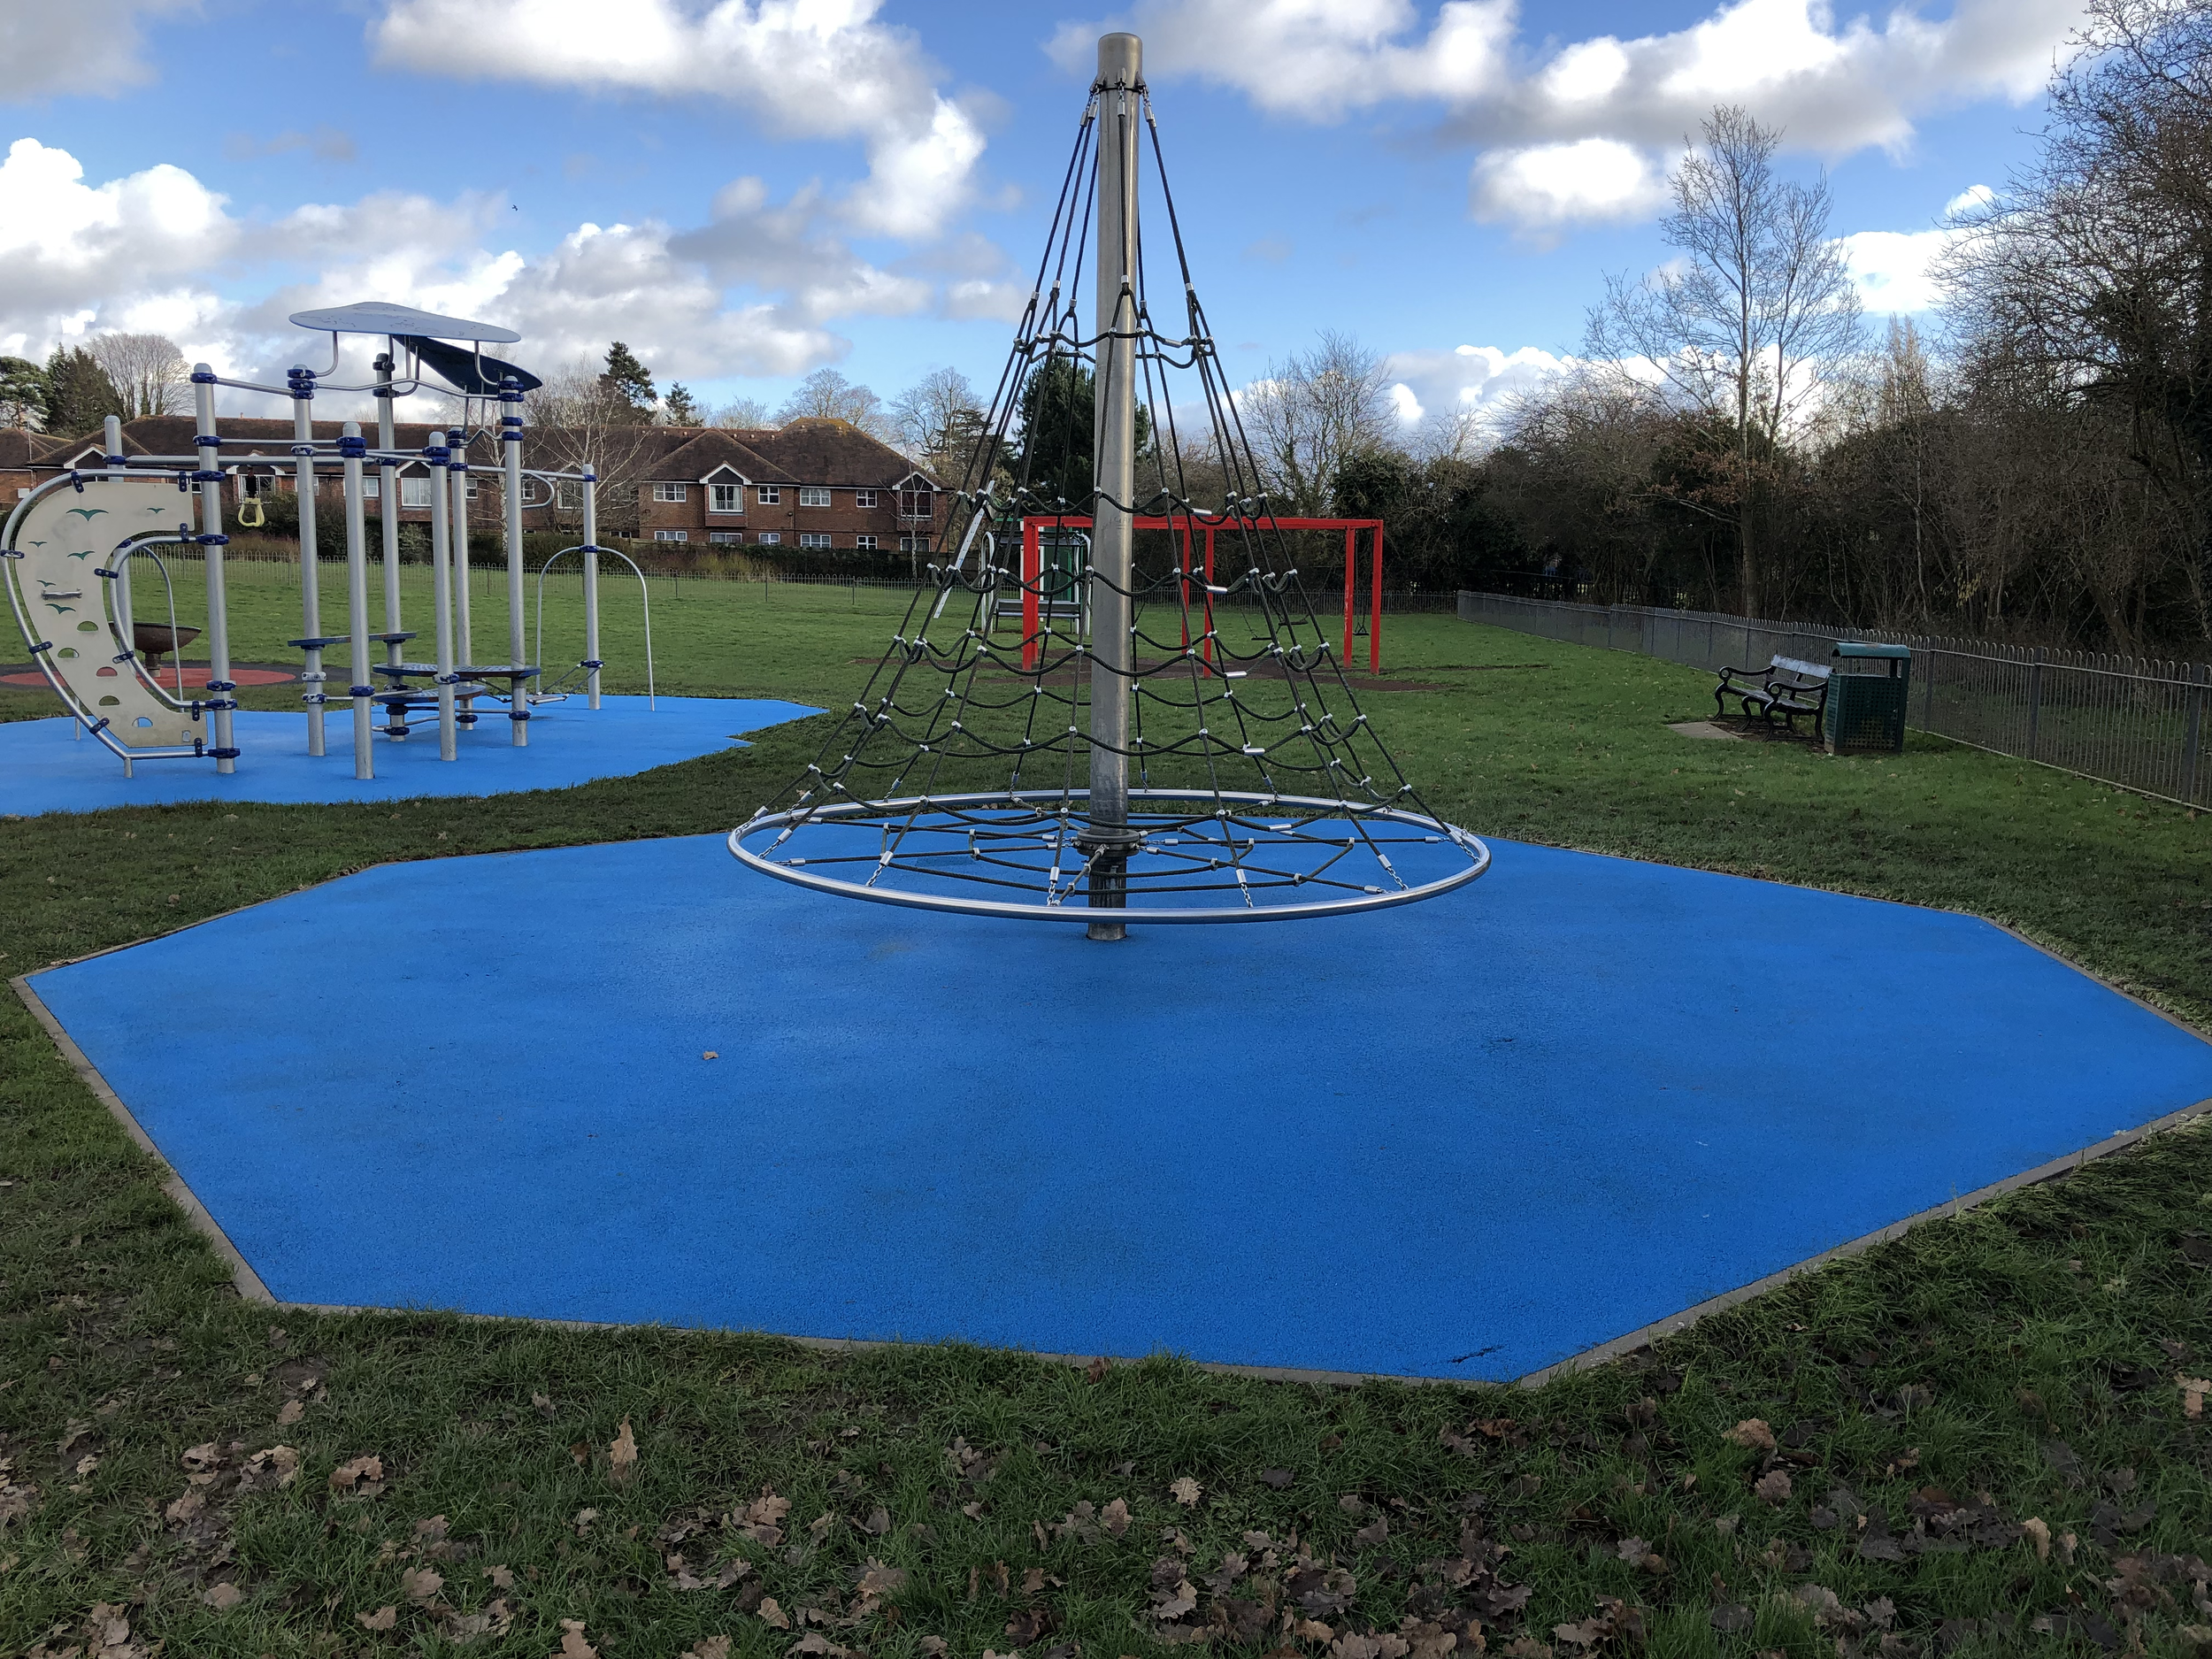 Playground after cleaning